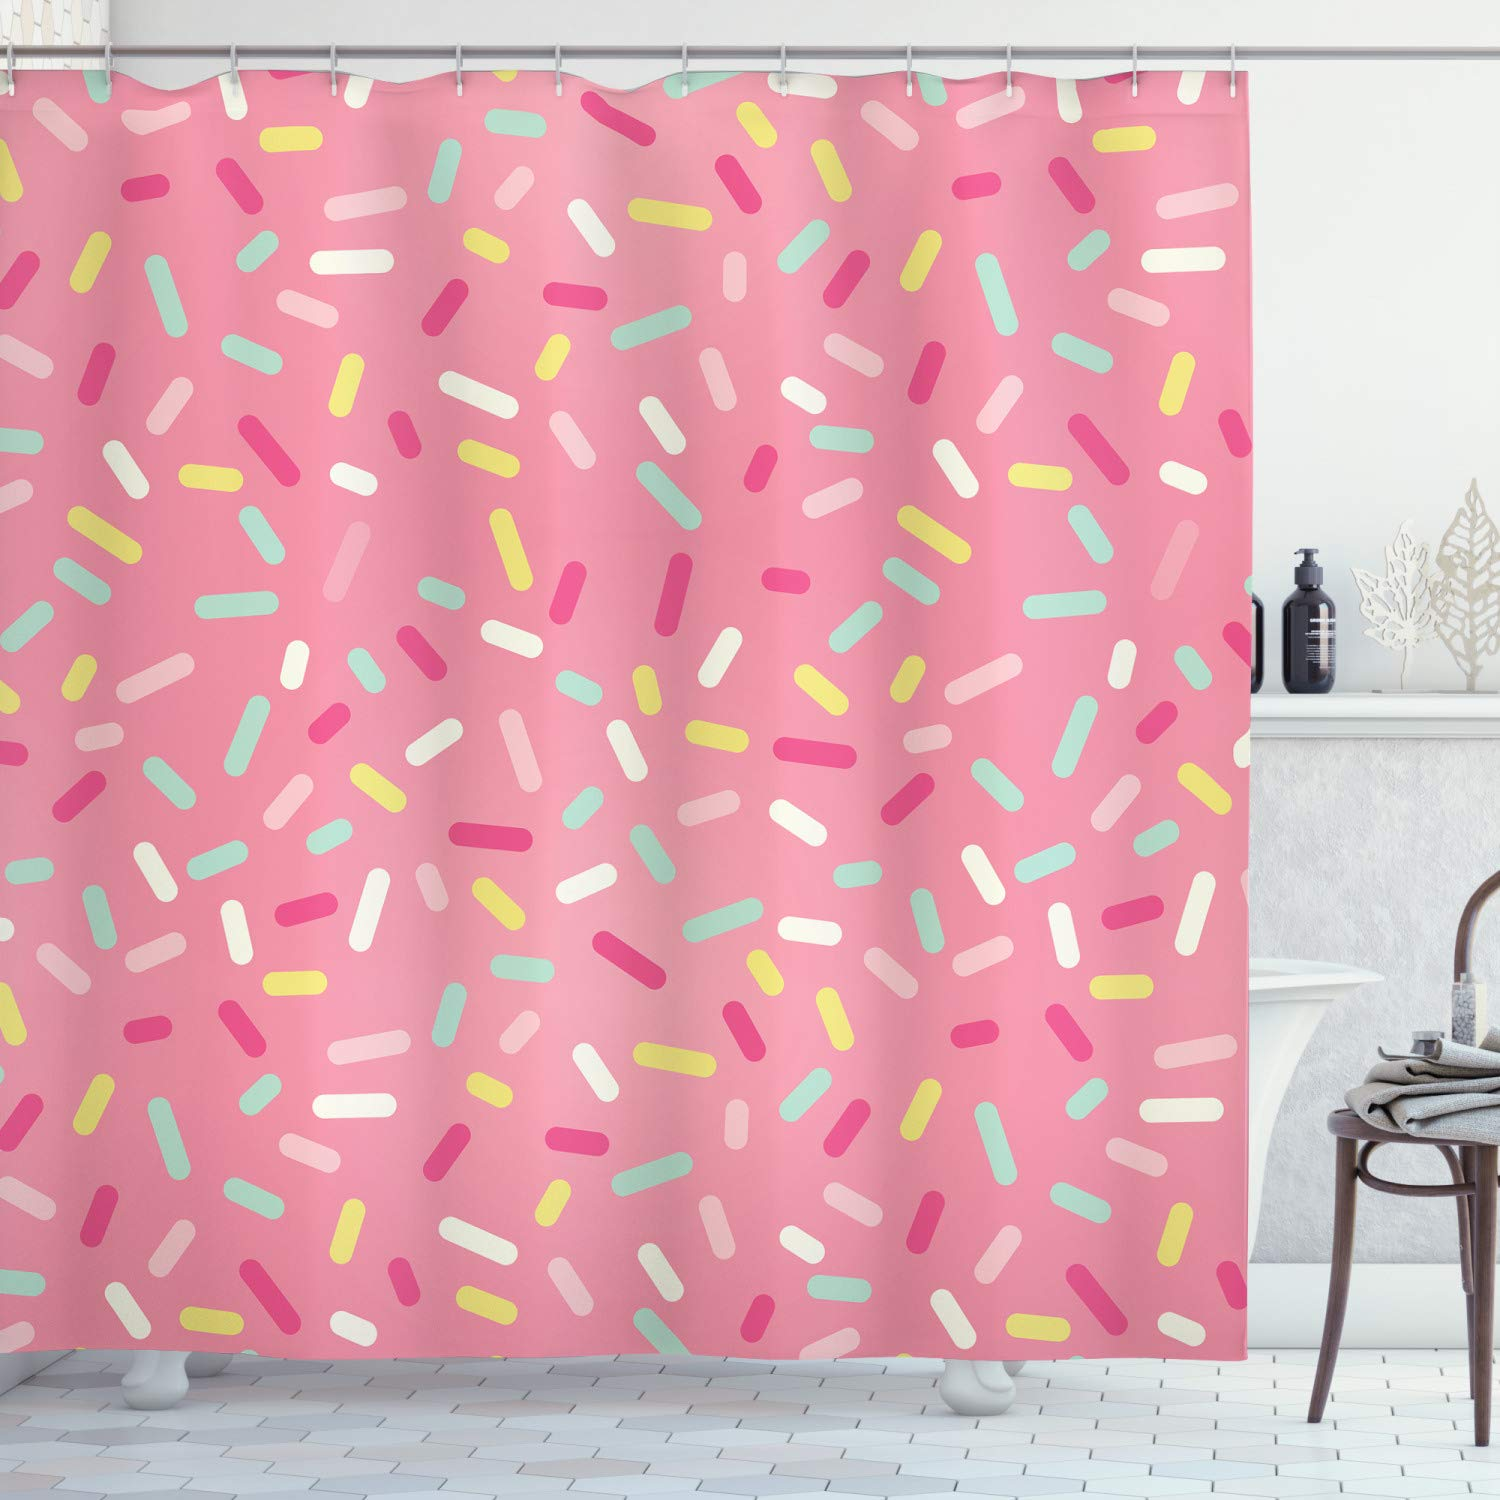 Ambesonne Pink and White Shower Curtain, Abstract Pattern of Colorful Donut Sprinkles Sweet Tasty Food Bakery Theme, Cloth Fabric Bathroom Decor Set with Hooks, 70 inches, Pink Yellow